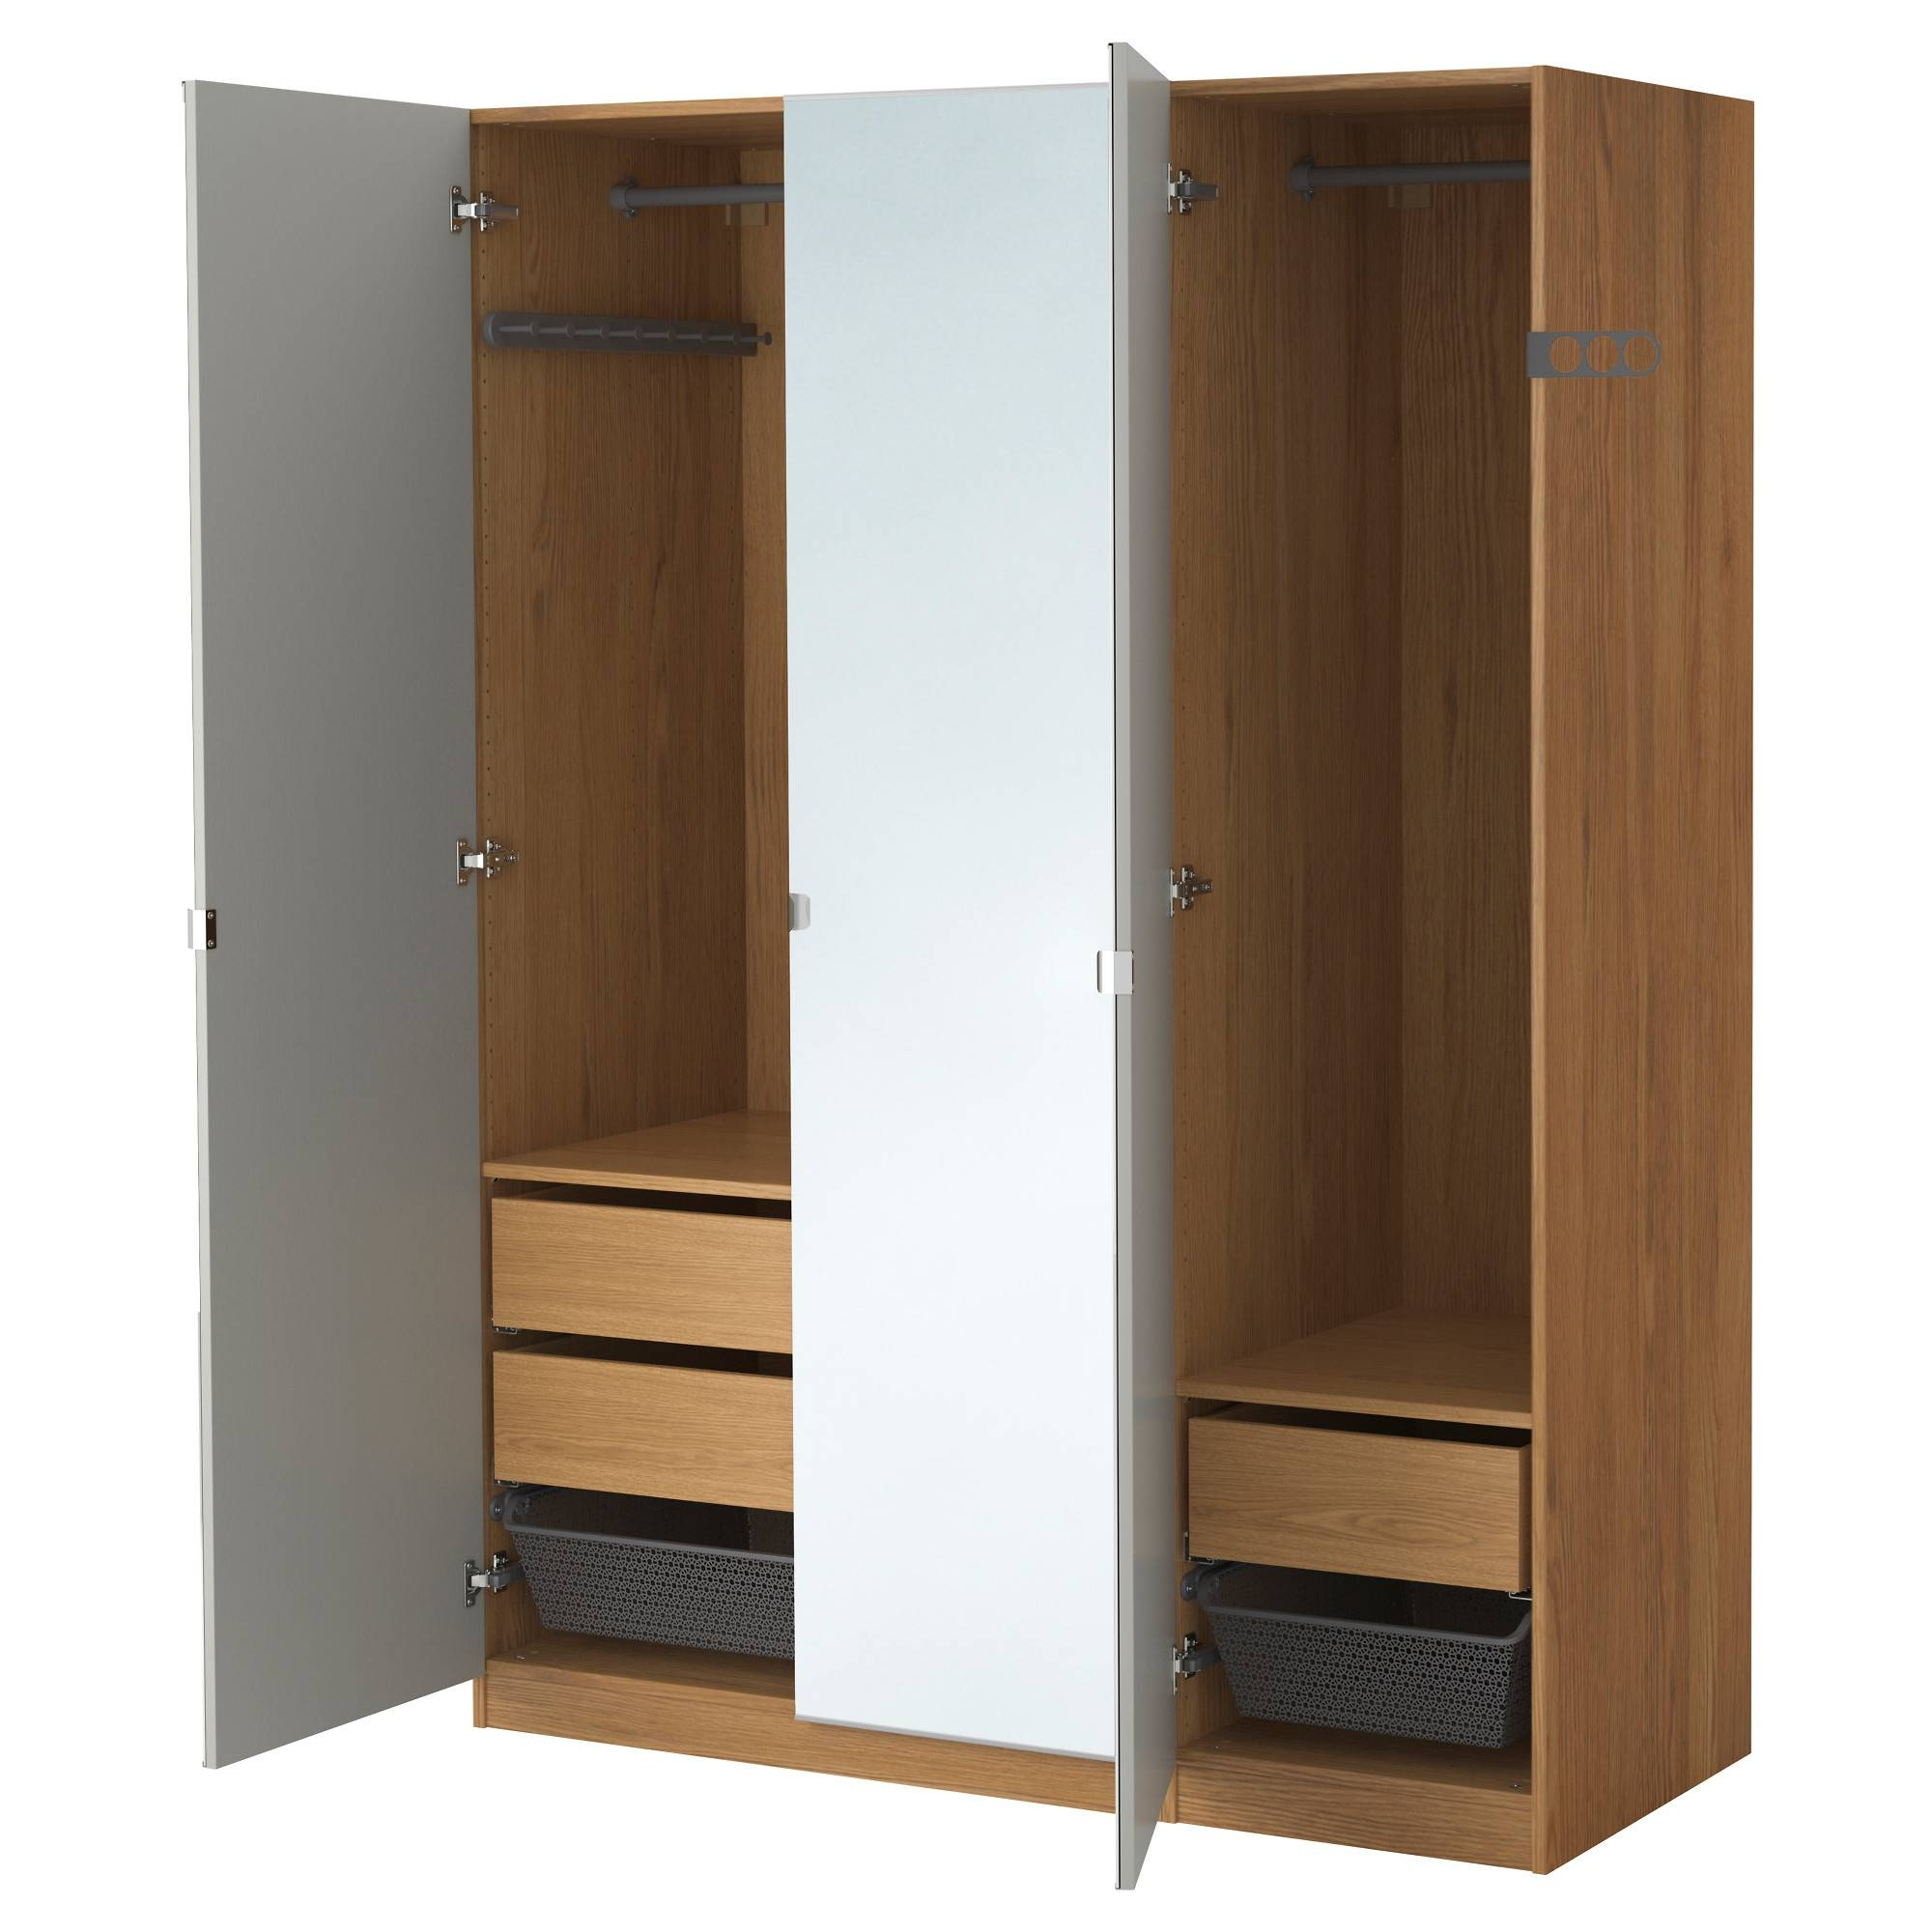 Wardrobes | Ikea Throughout Wardrobes With Mirror (View 13 of 15)